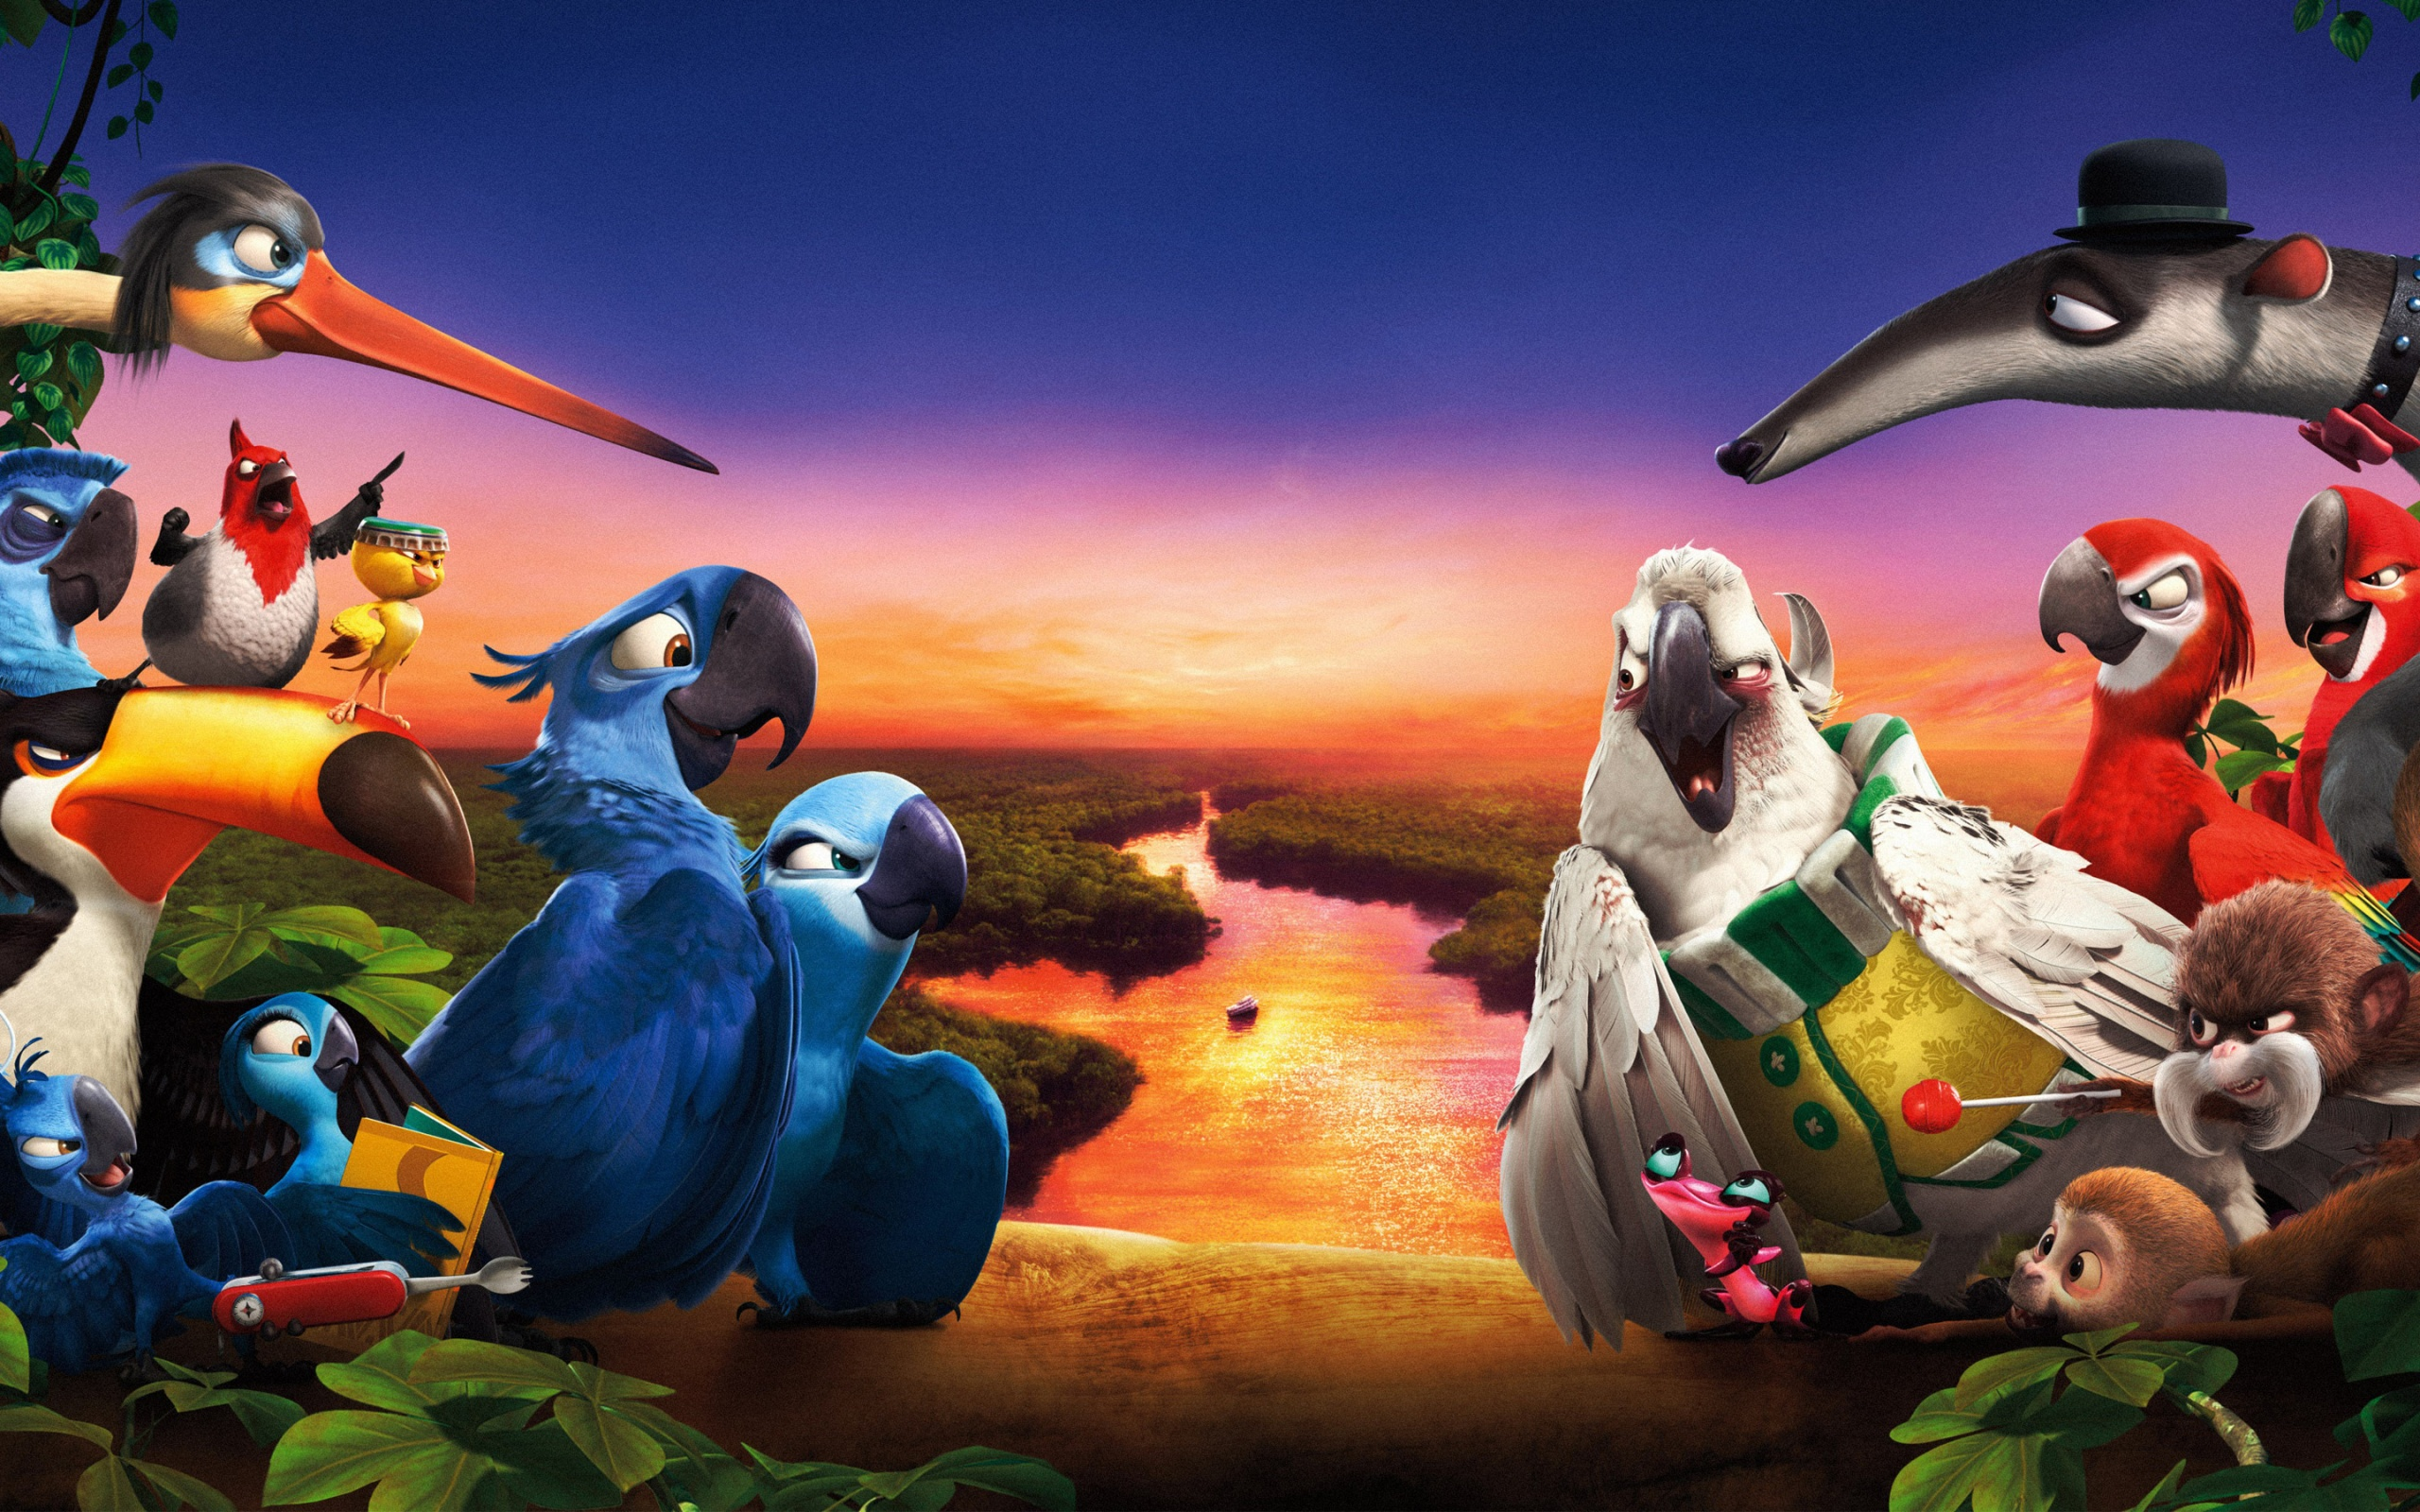 Rio 2 movie 2014 wallpapers in jpg format for free download rio 2 movie 2014 wallpapers voltagebd Choice Image